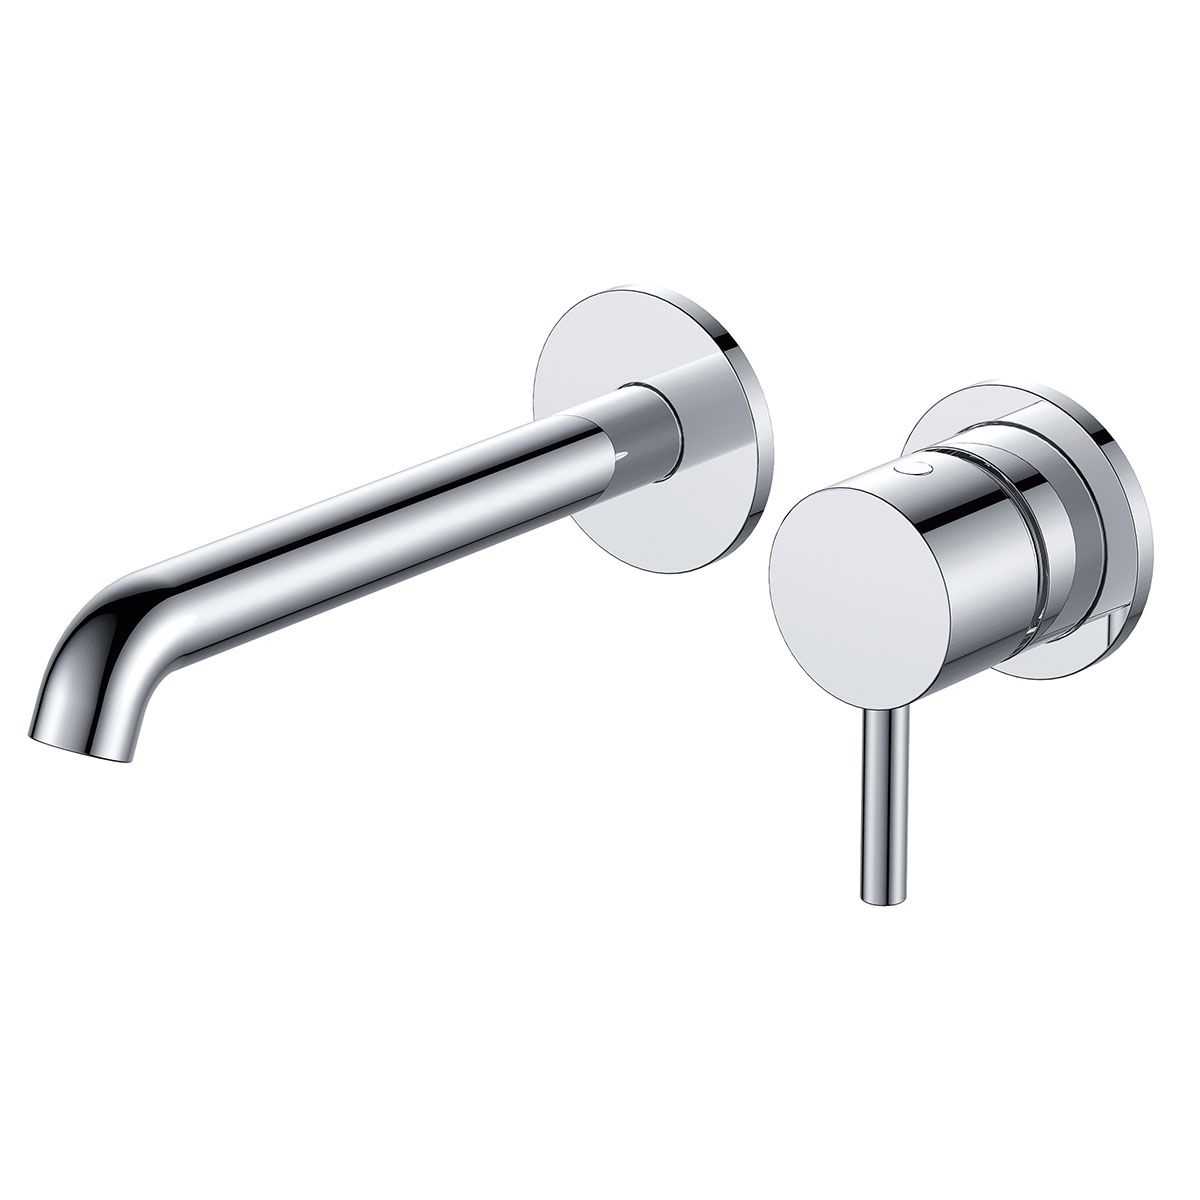 Frontline Chrome Mineral Wall Mounted Bath Filler